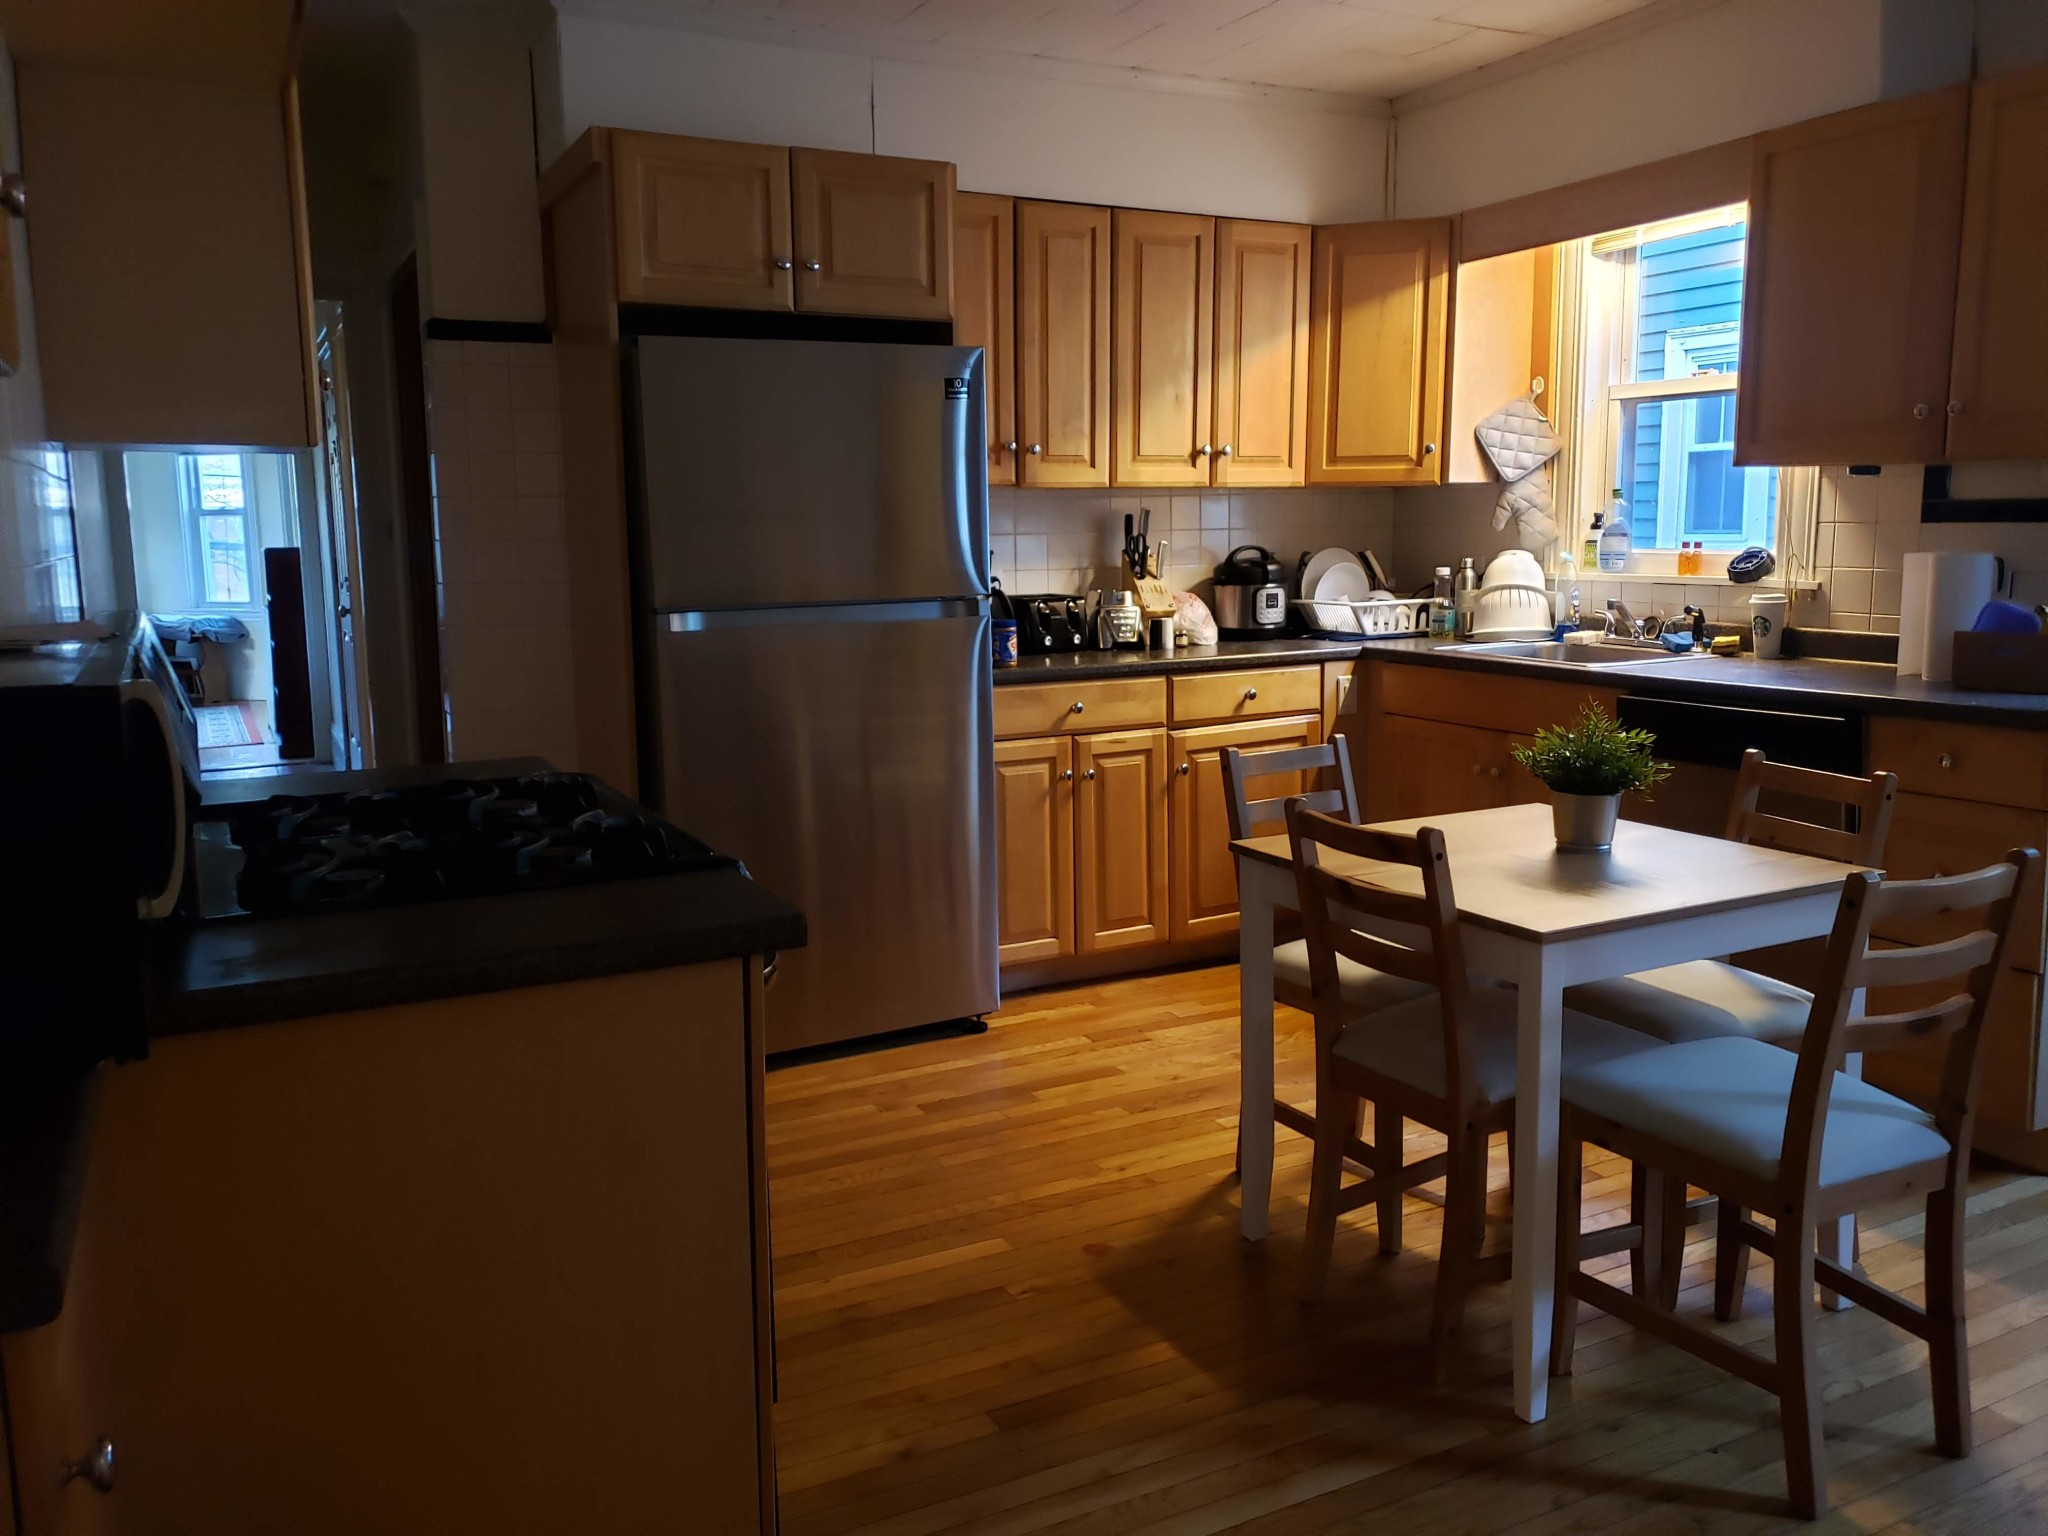 4 Beds, 1 Bath apartment in Brookline for $850